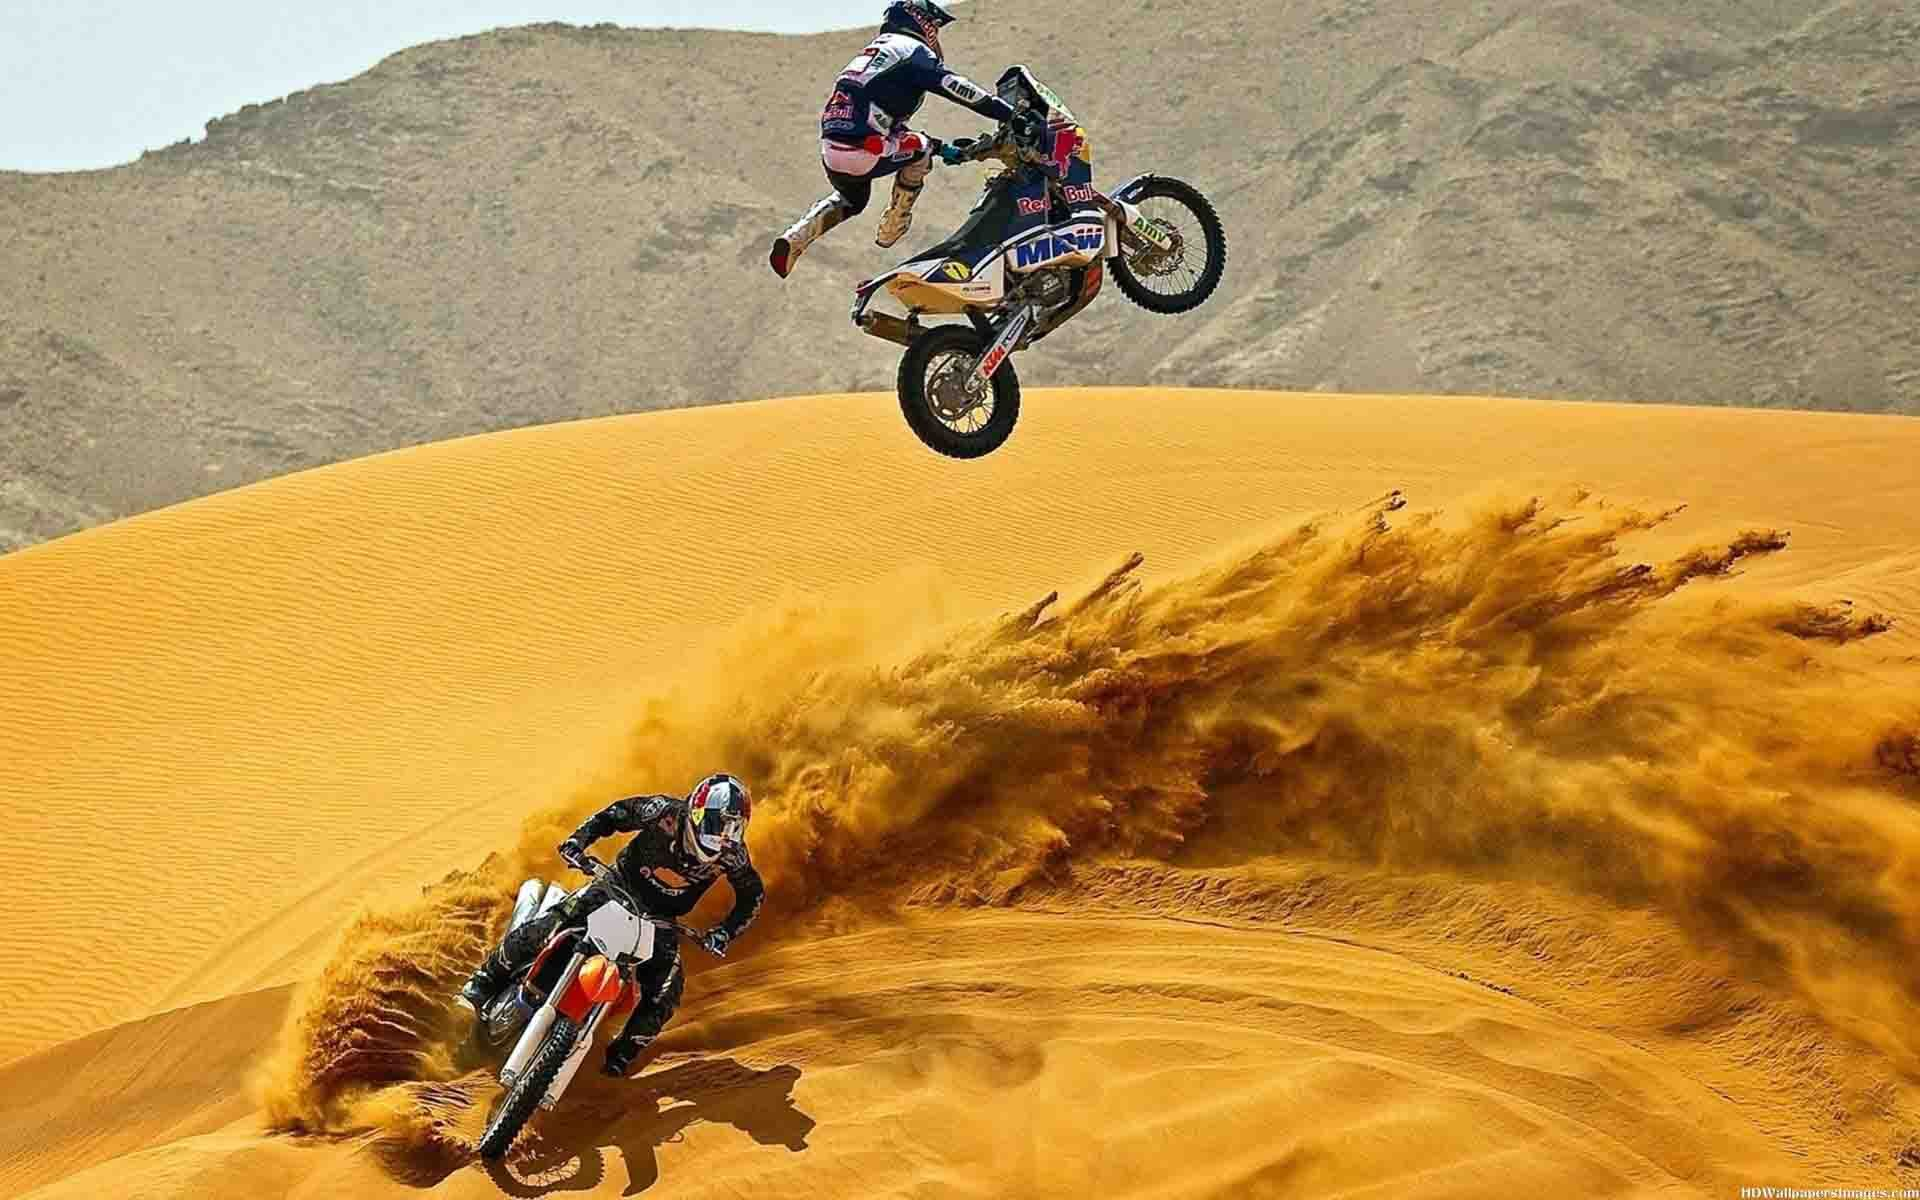 Ktm motorcycles hd wallpapers free wallaper downloads ktm sport - Bikes Racing Hd Wallpapers Free Download